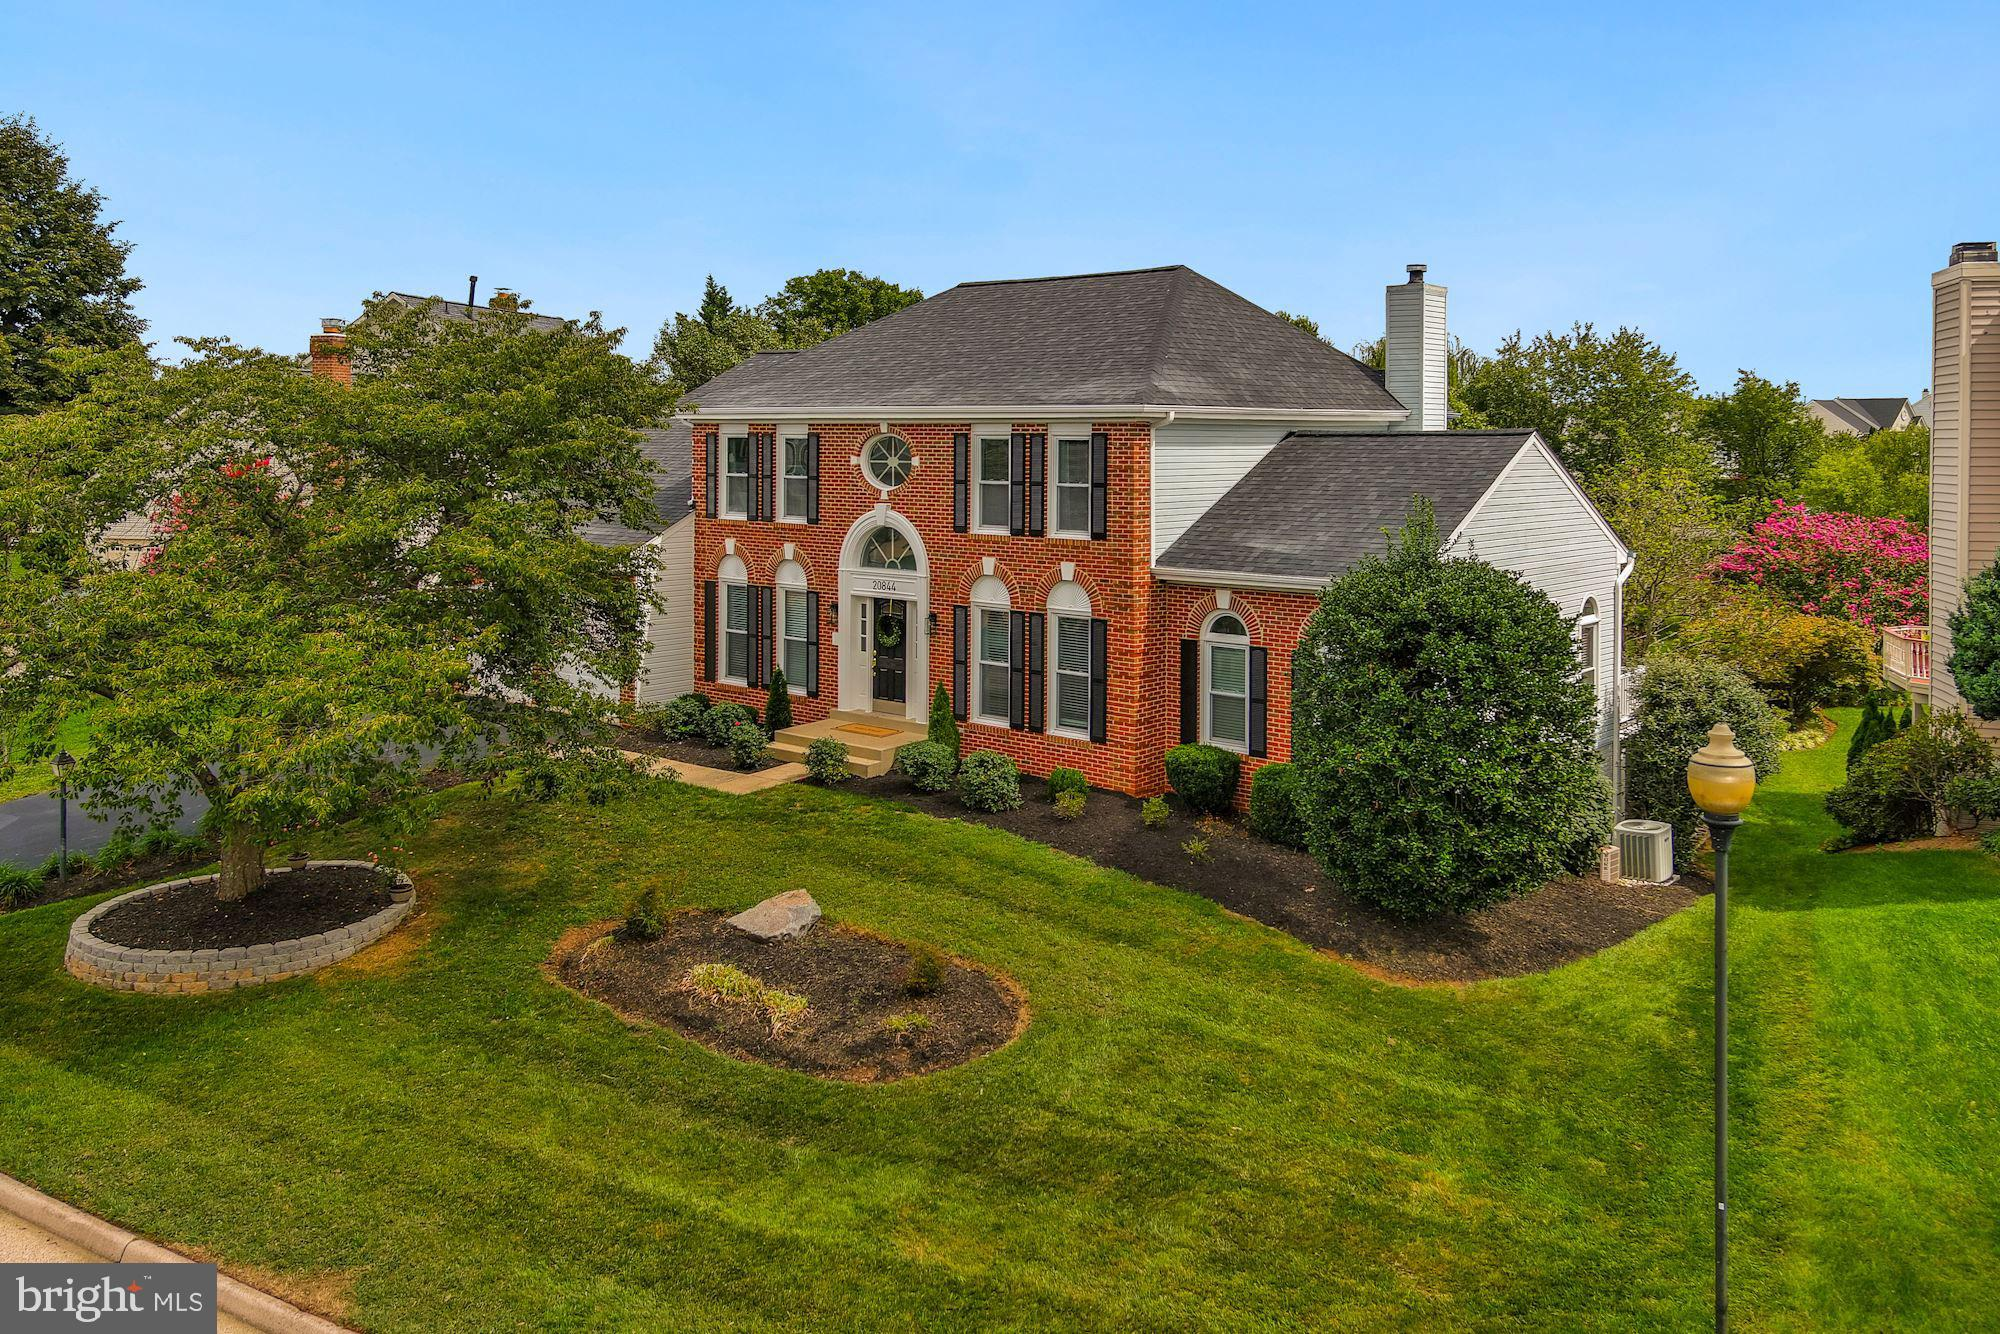 This beautiful brick home is located on a desirable cul-de-sac in sought after Ashburn Village. With